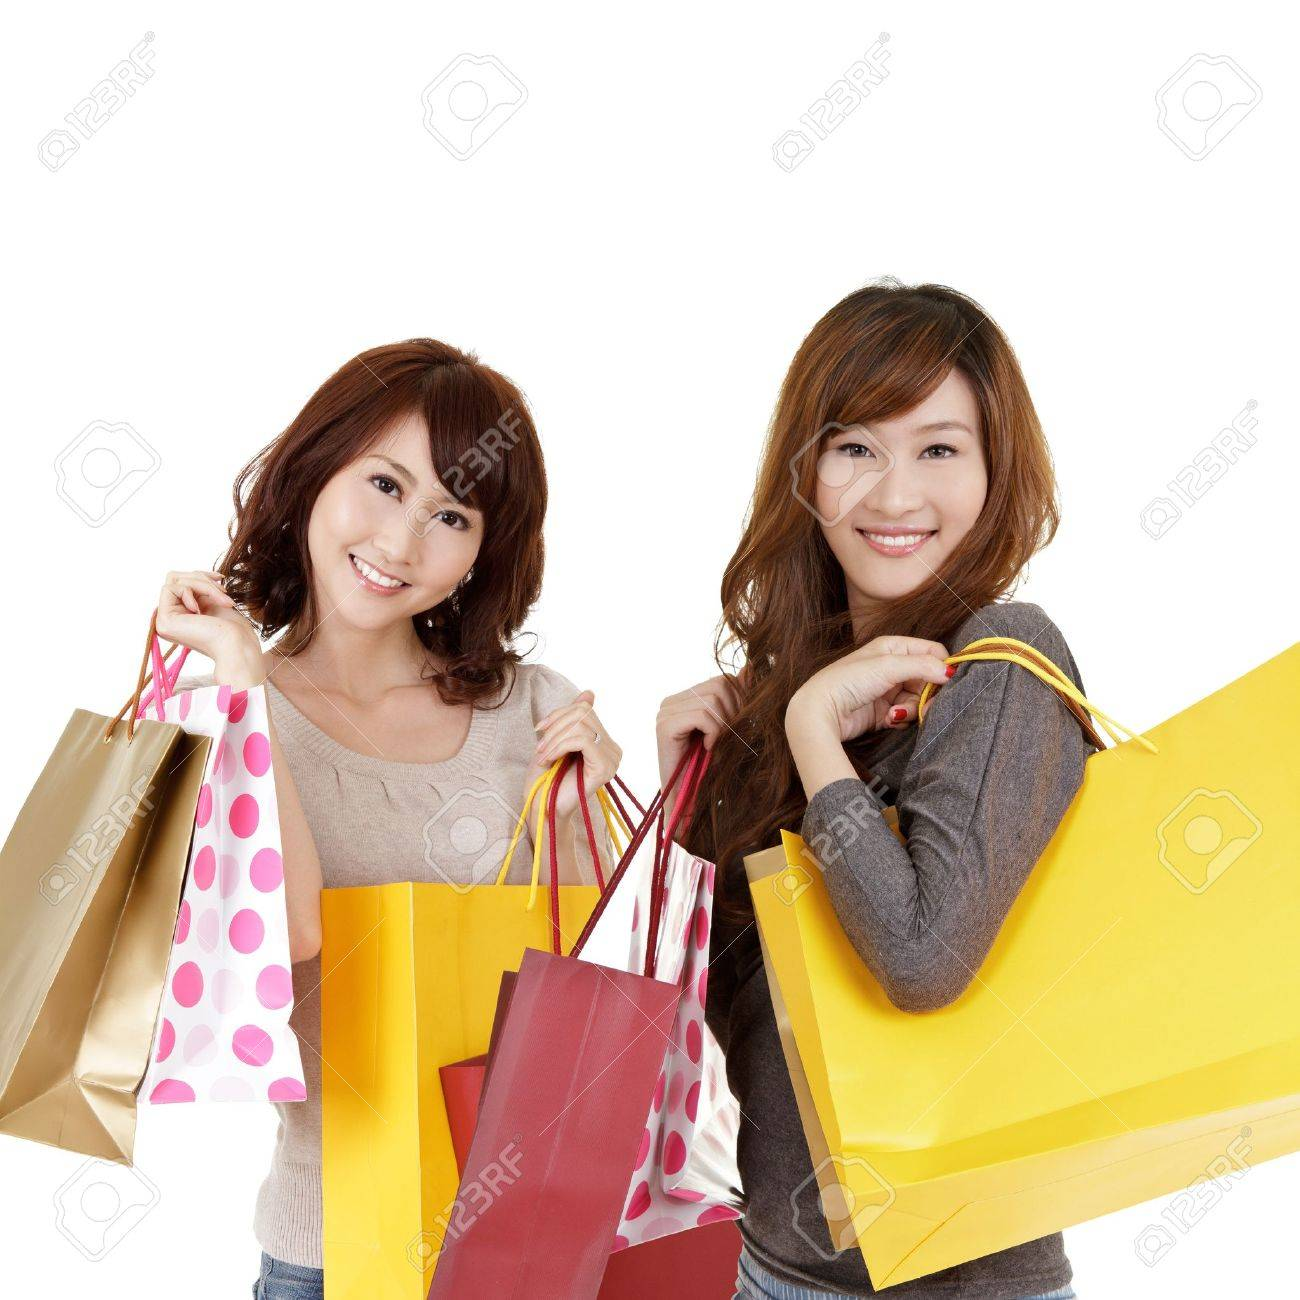 Shopping women, closeup portrait of two lady holding bags and smiling on white background. Stock Photo - 9113896